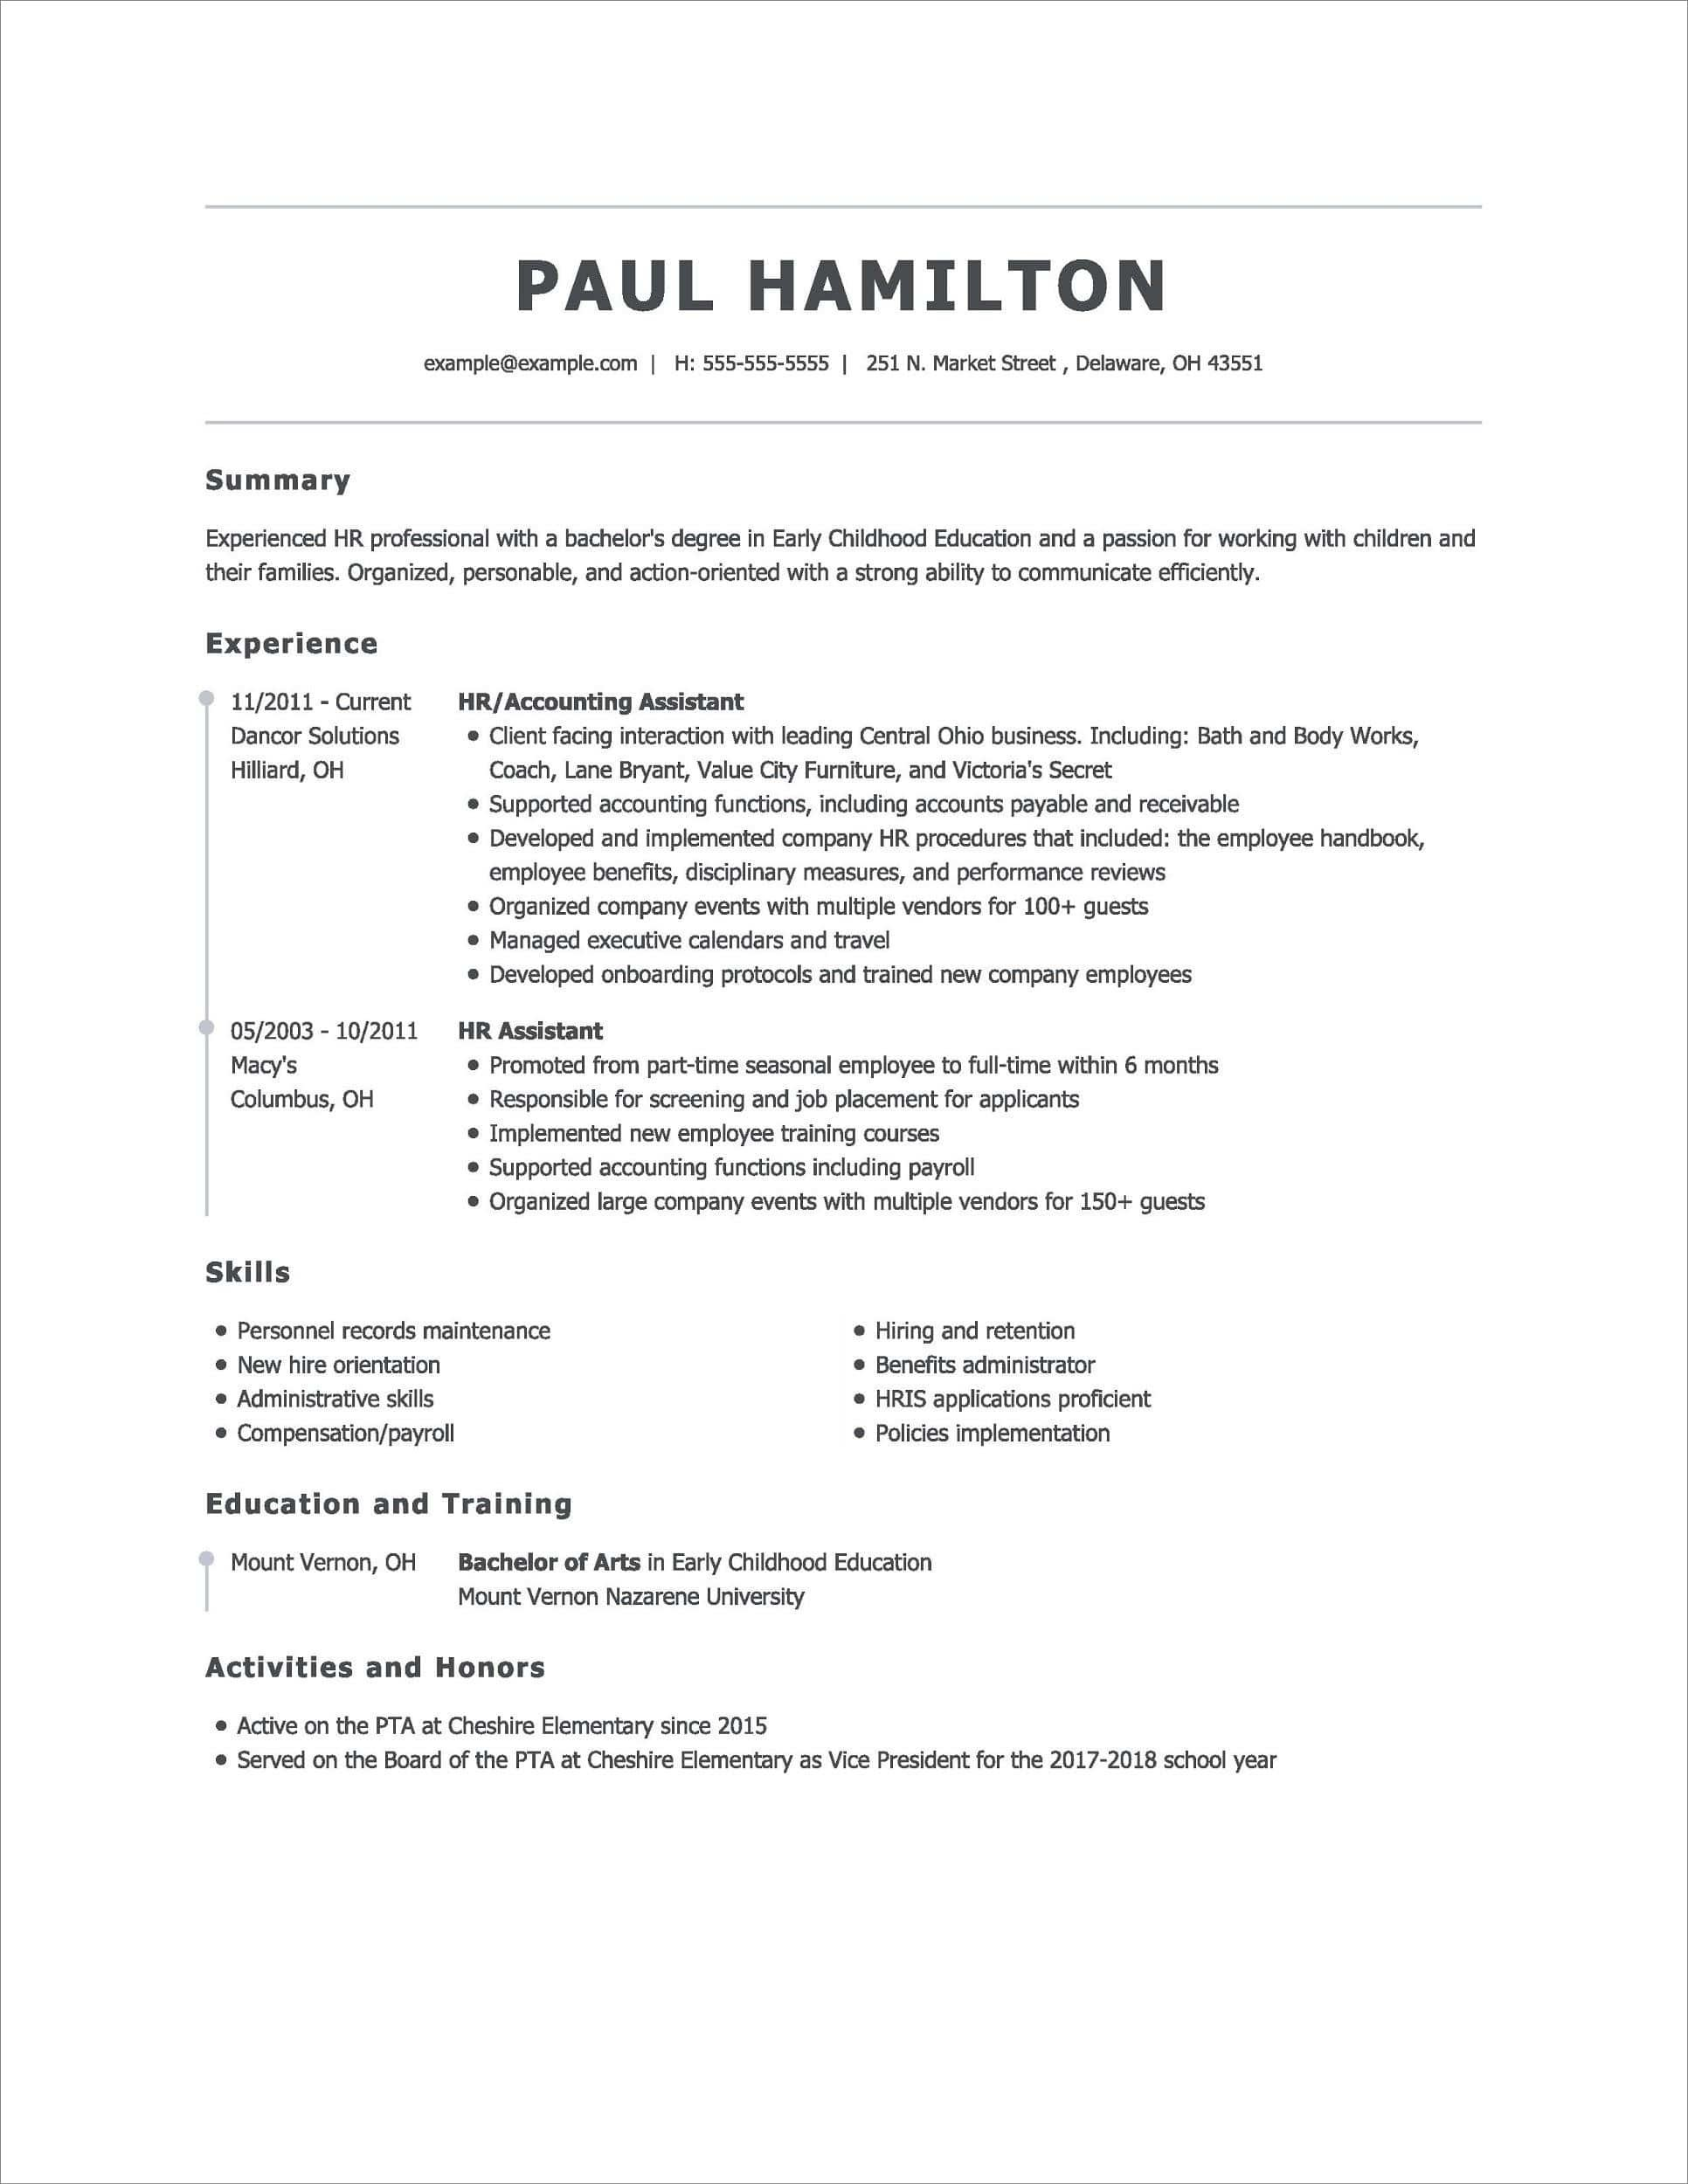 best resume builders free paid features now customer service theatrical template reddit Resume Resume Now Customer Service